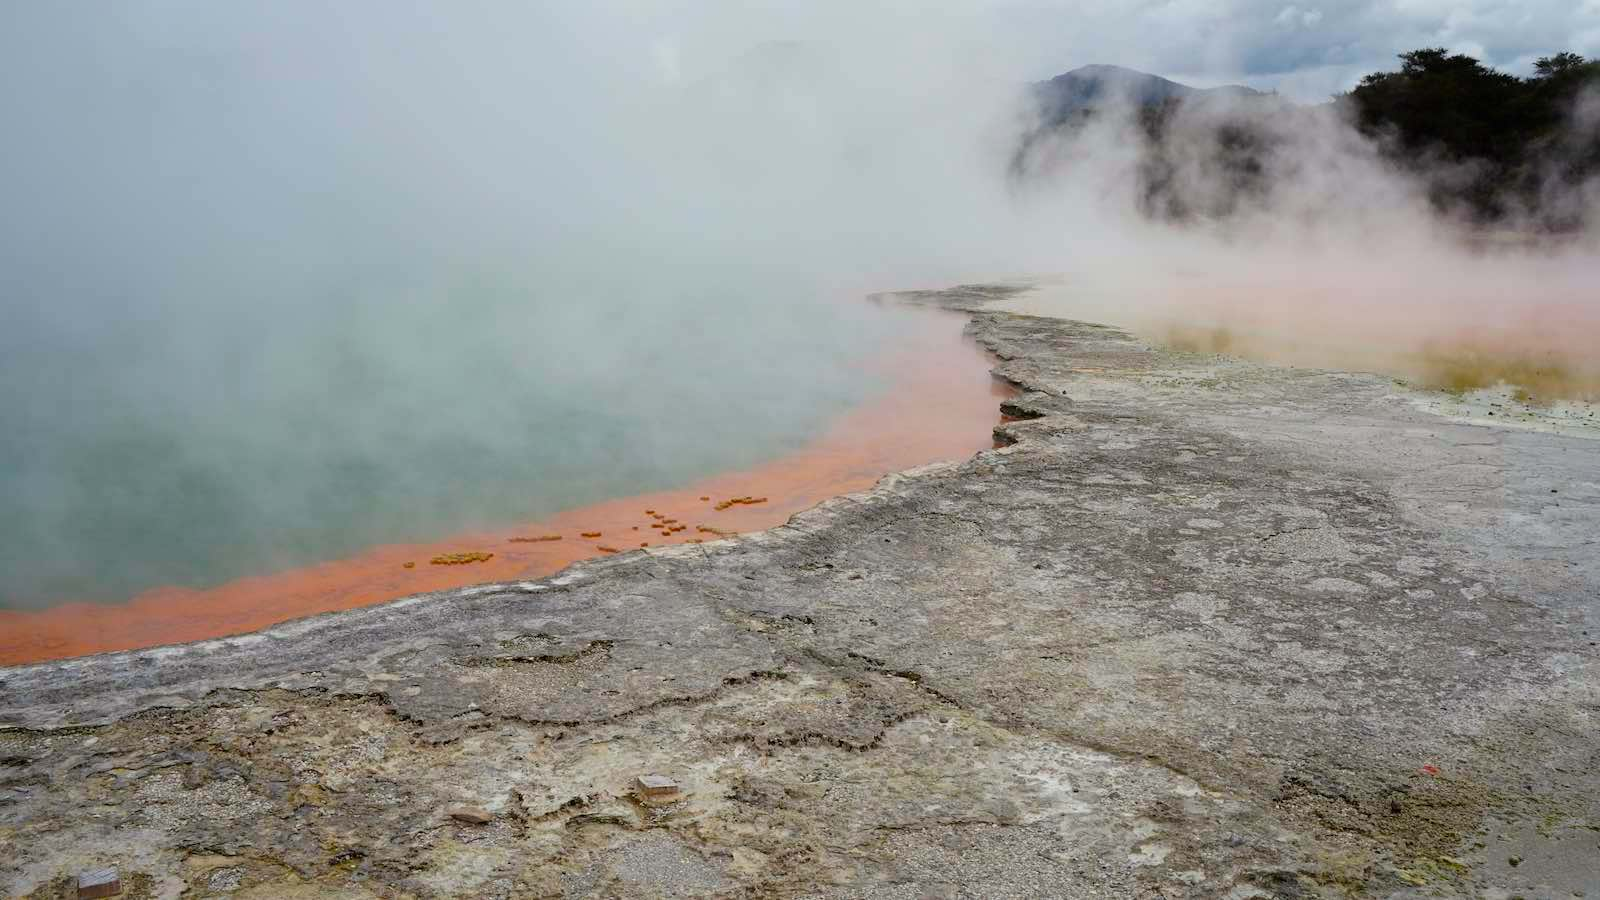 Colorful hot spring, although you probably wouldn't want to bathe in this, apparently the orange comes from an arsentic compound